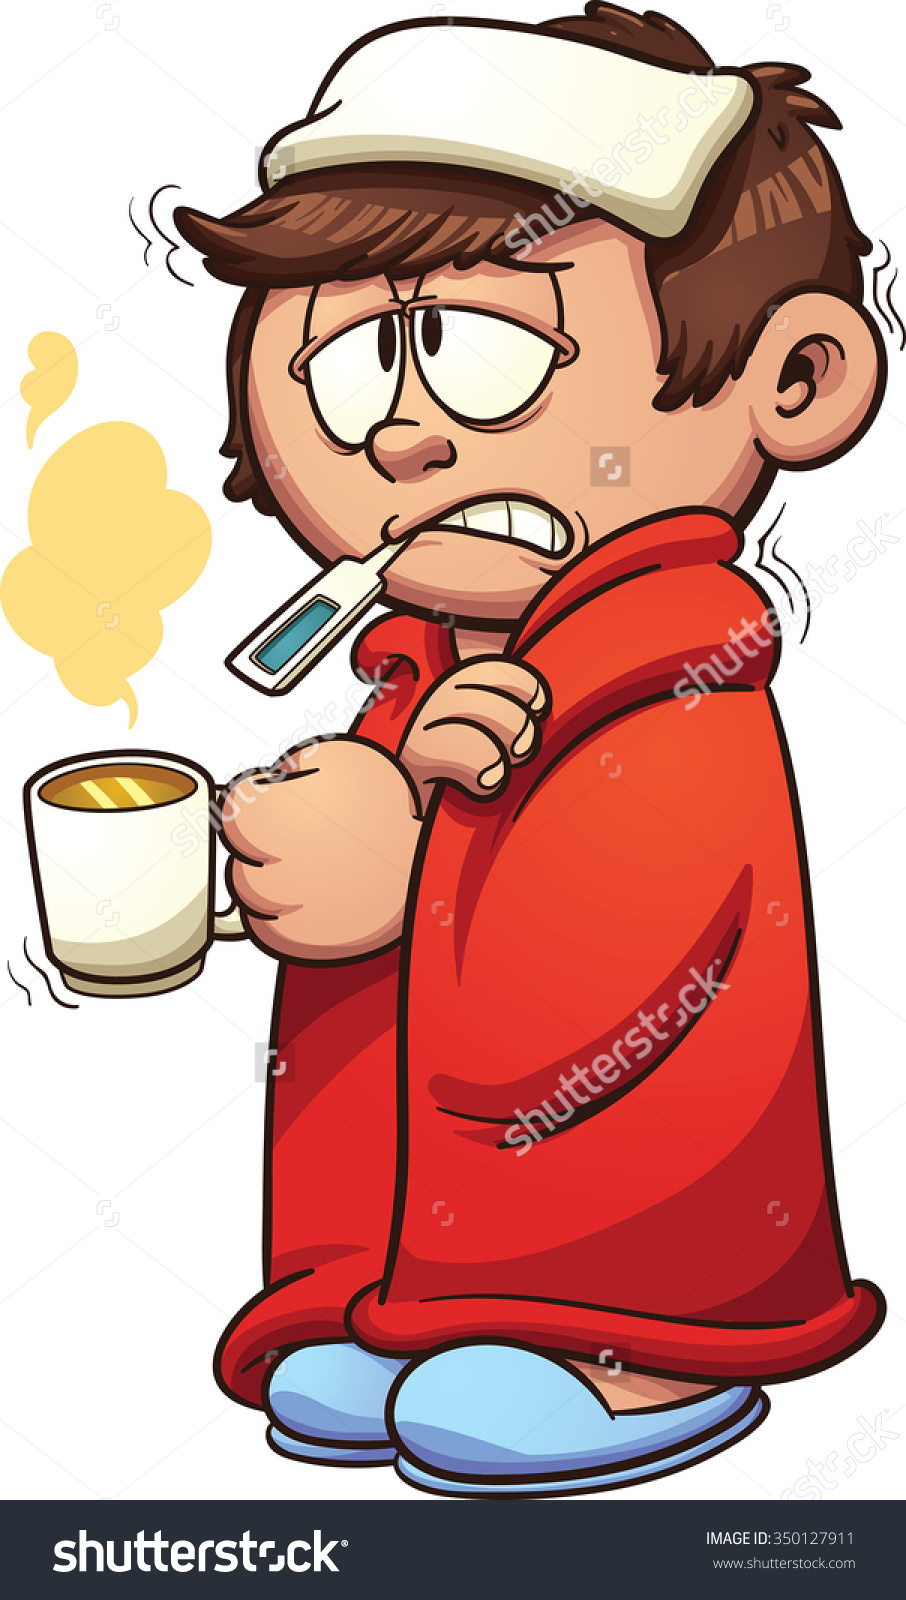 Sick with a cold clipart.